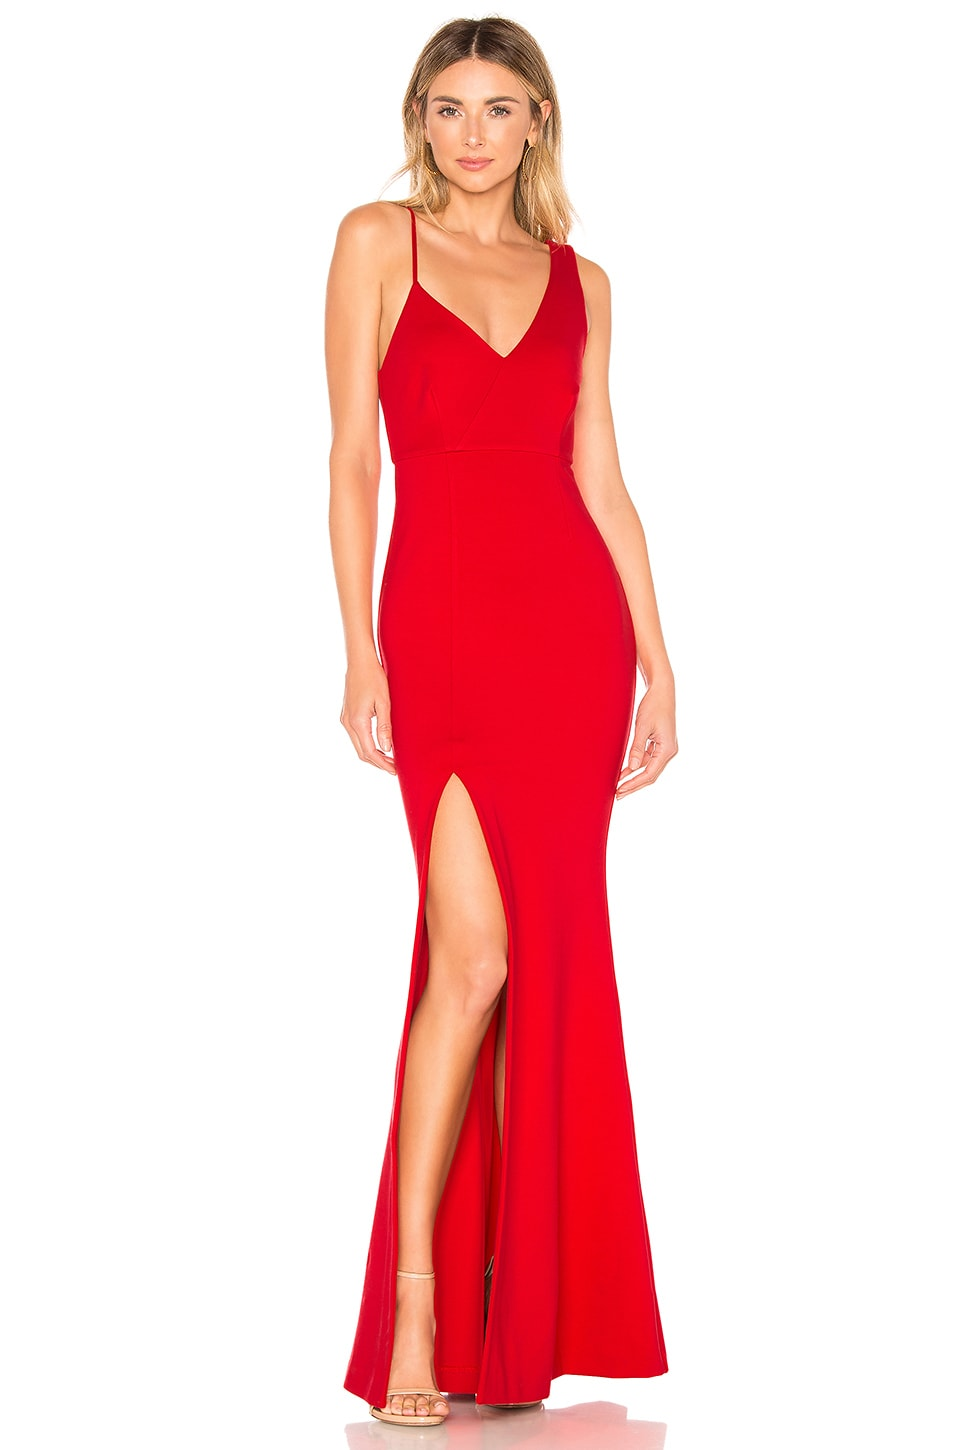 NBD Negroni Gown in Red